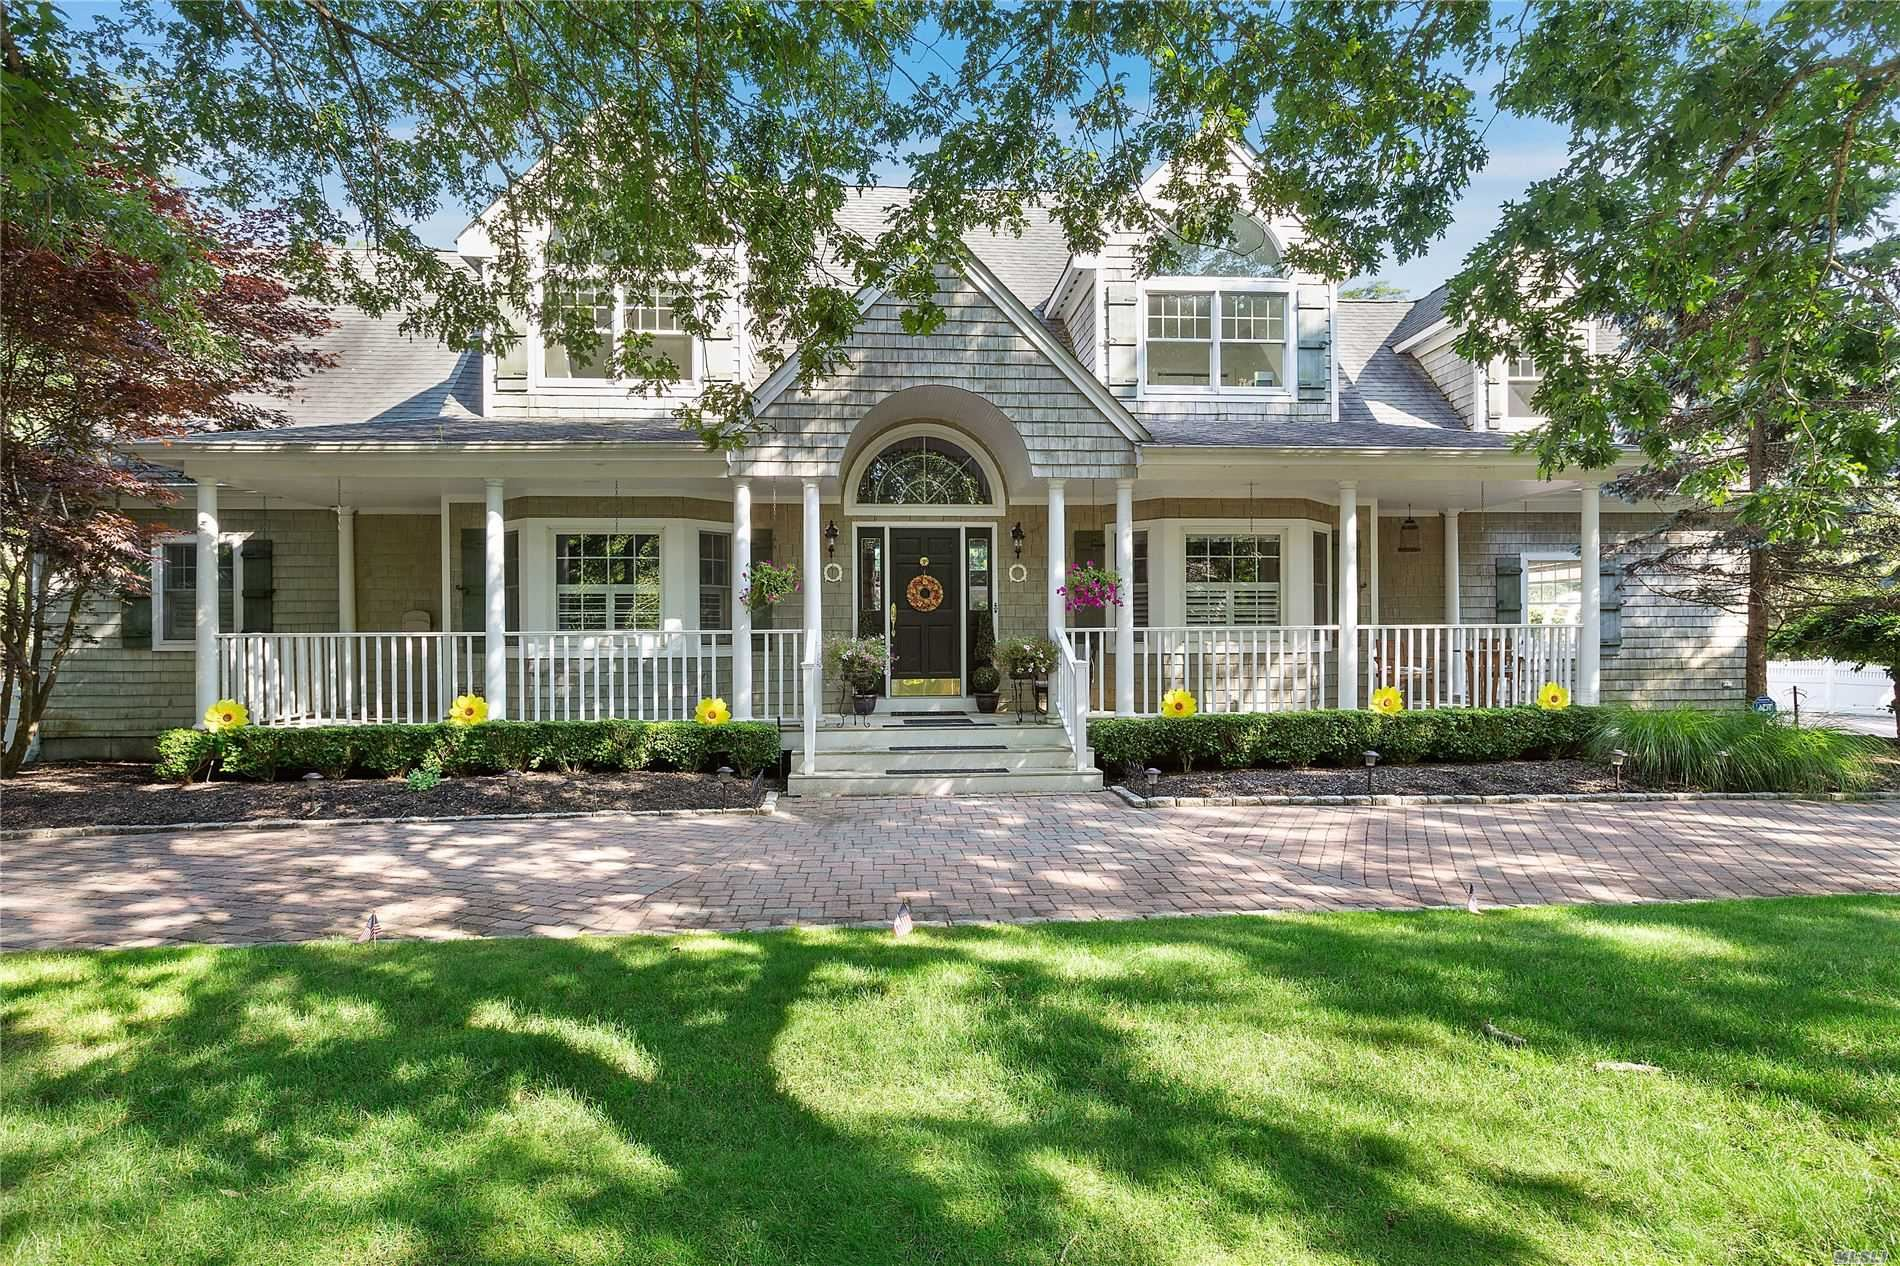 11 Clover Grass Court, Westhampton, NY 11977 - MLS#: 3209739